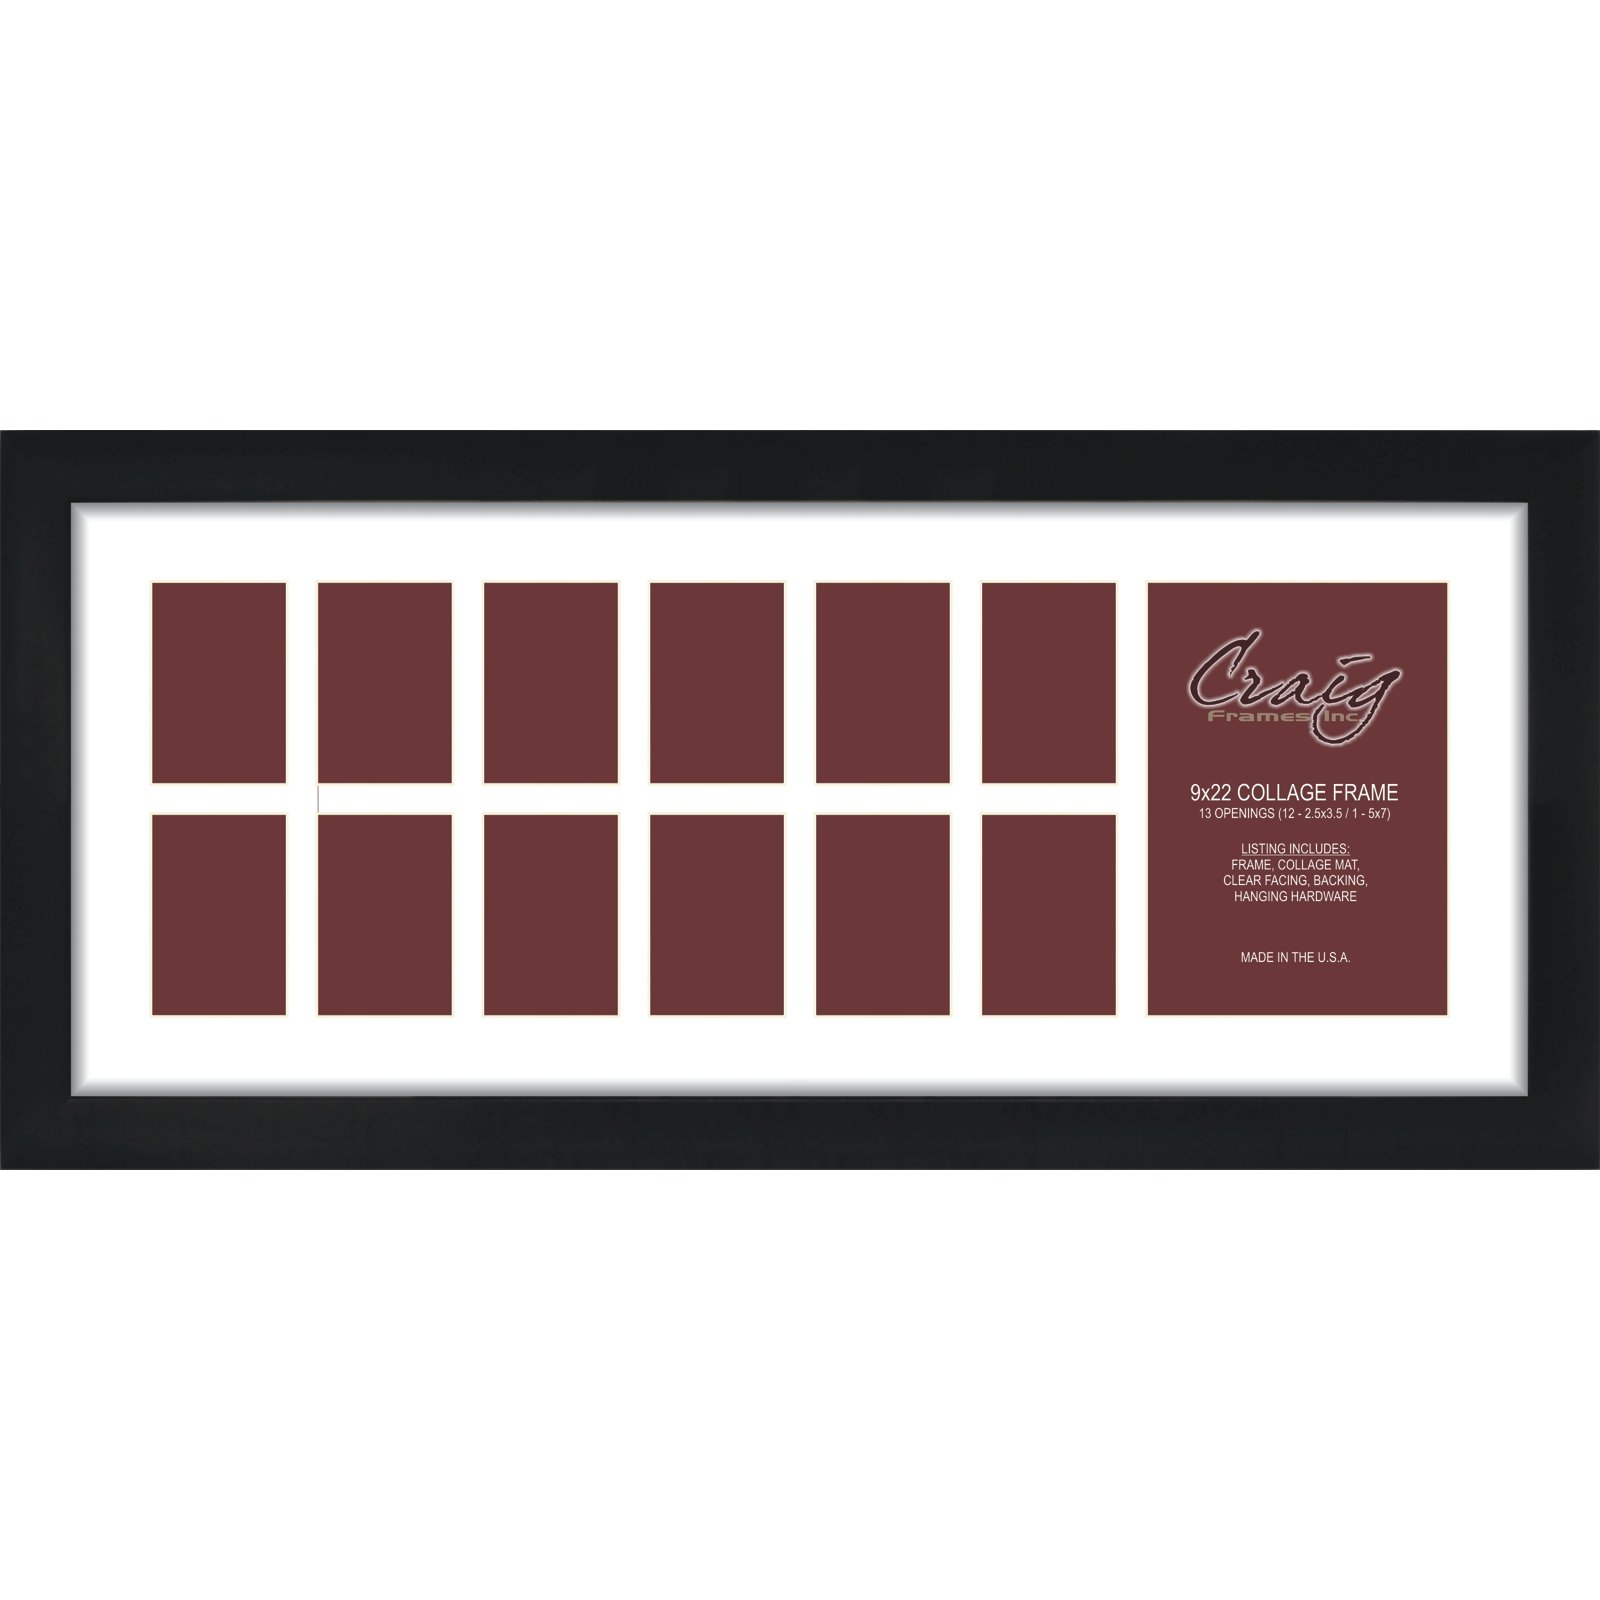 Craig Frames 1WB3BK 9 by 22-Inch Black Picture Frame, Single White Collage Mat with 13 Openings